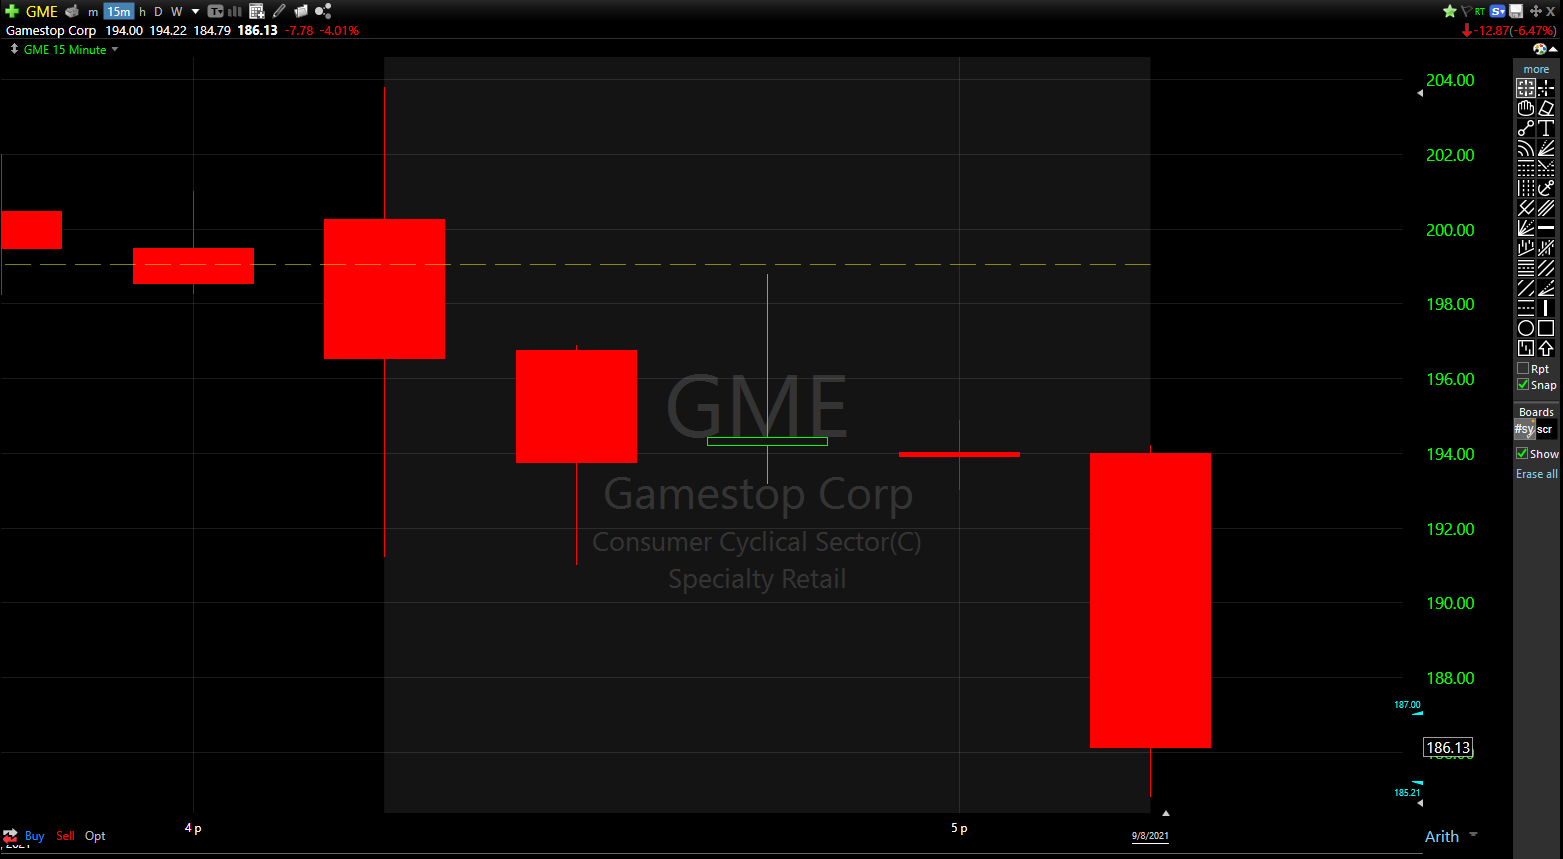 GME shares took a hit when the conference call abruptly ended with no Q&A session.